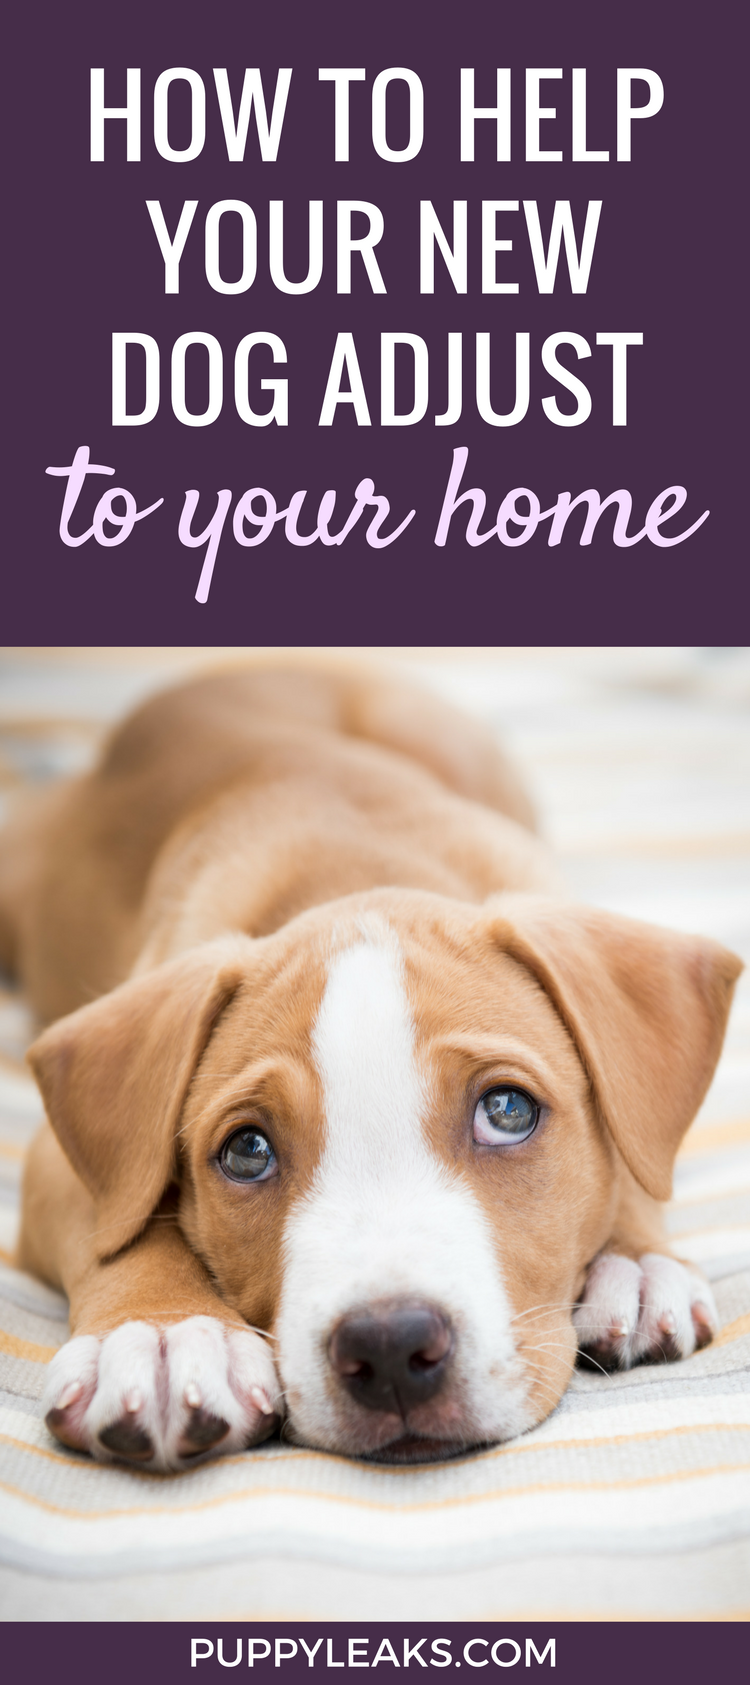 10 Tips for Helping Your Dog Adjust To Their New Home